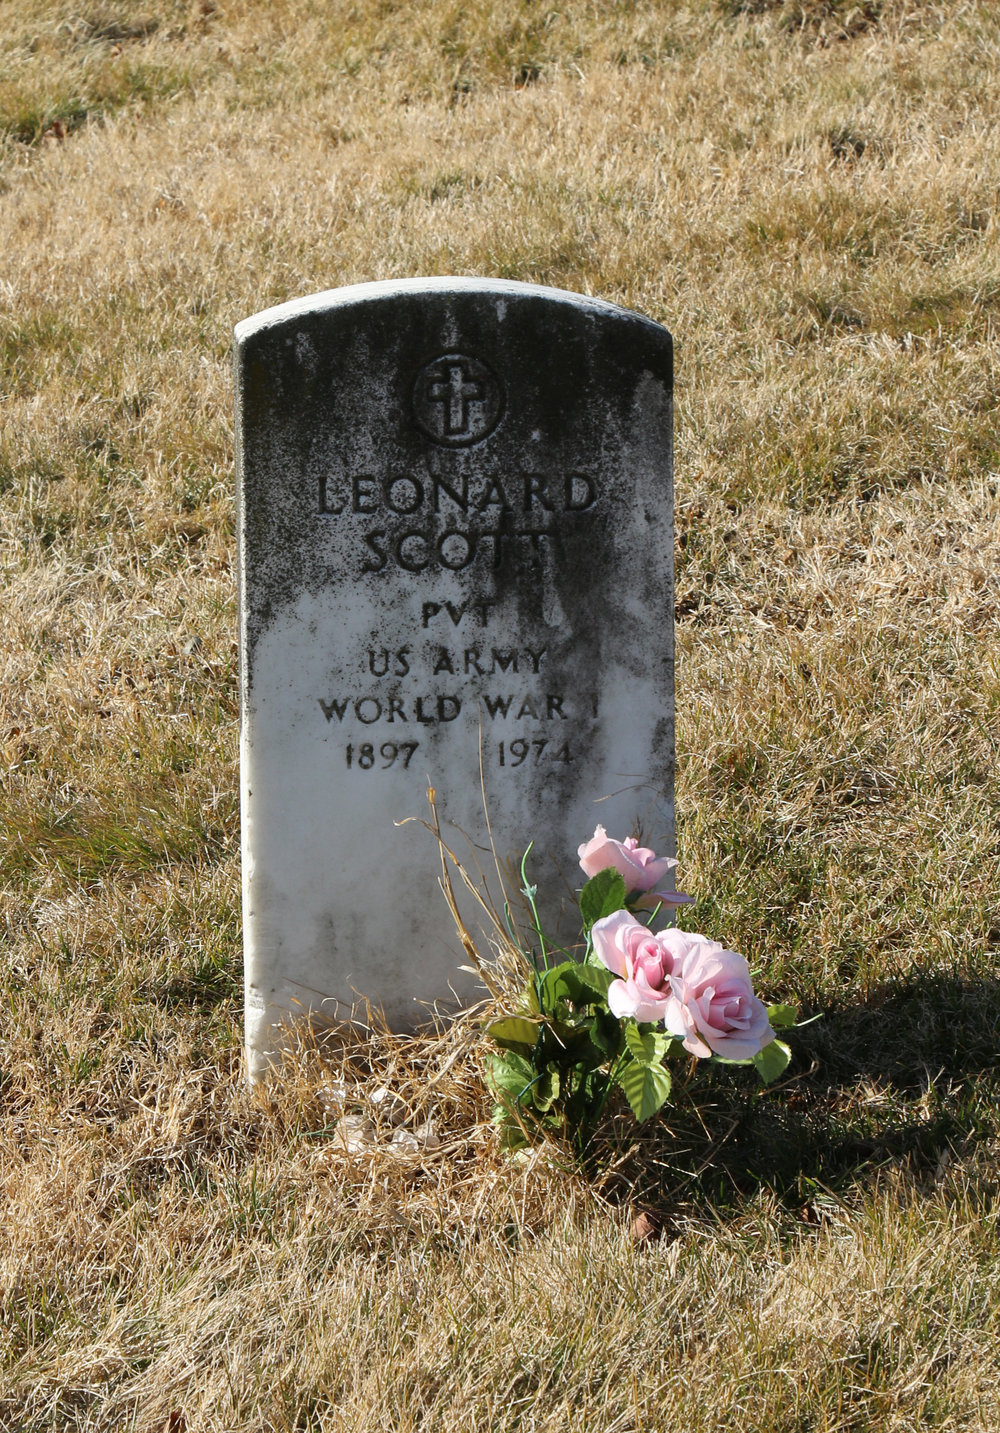 Pvt. Leonard Scott US Army world war i 1897 – 1974